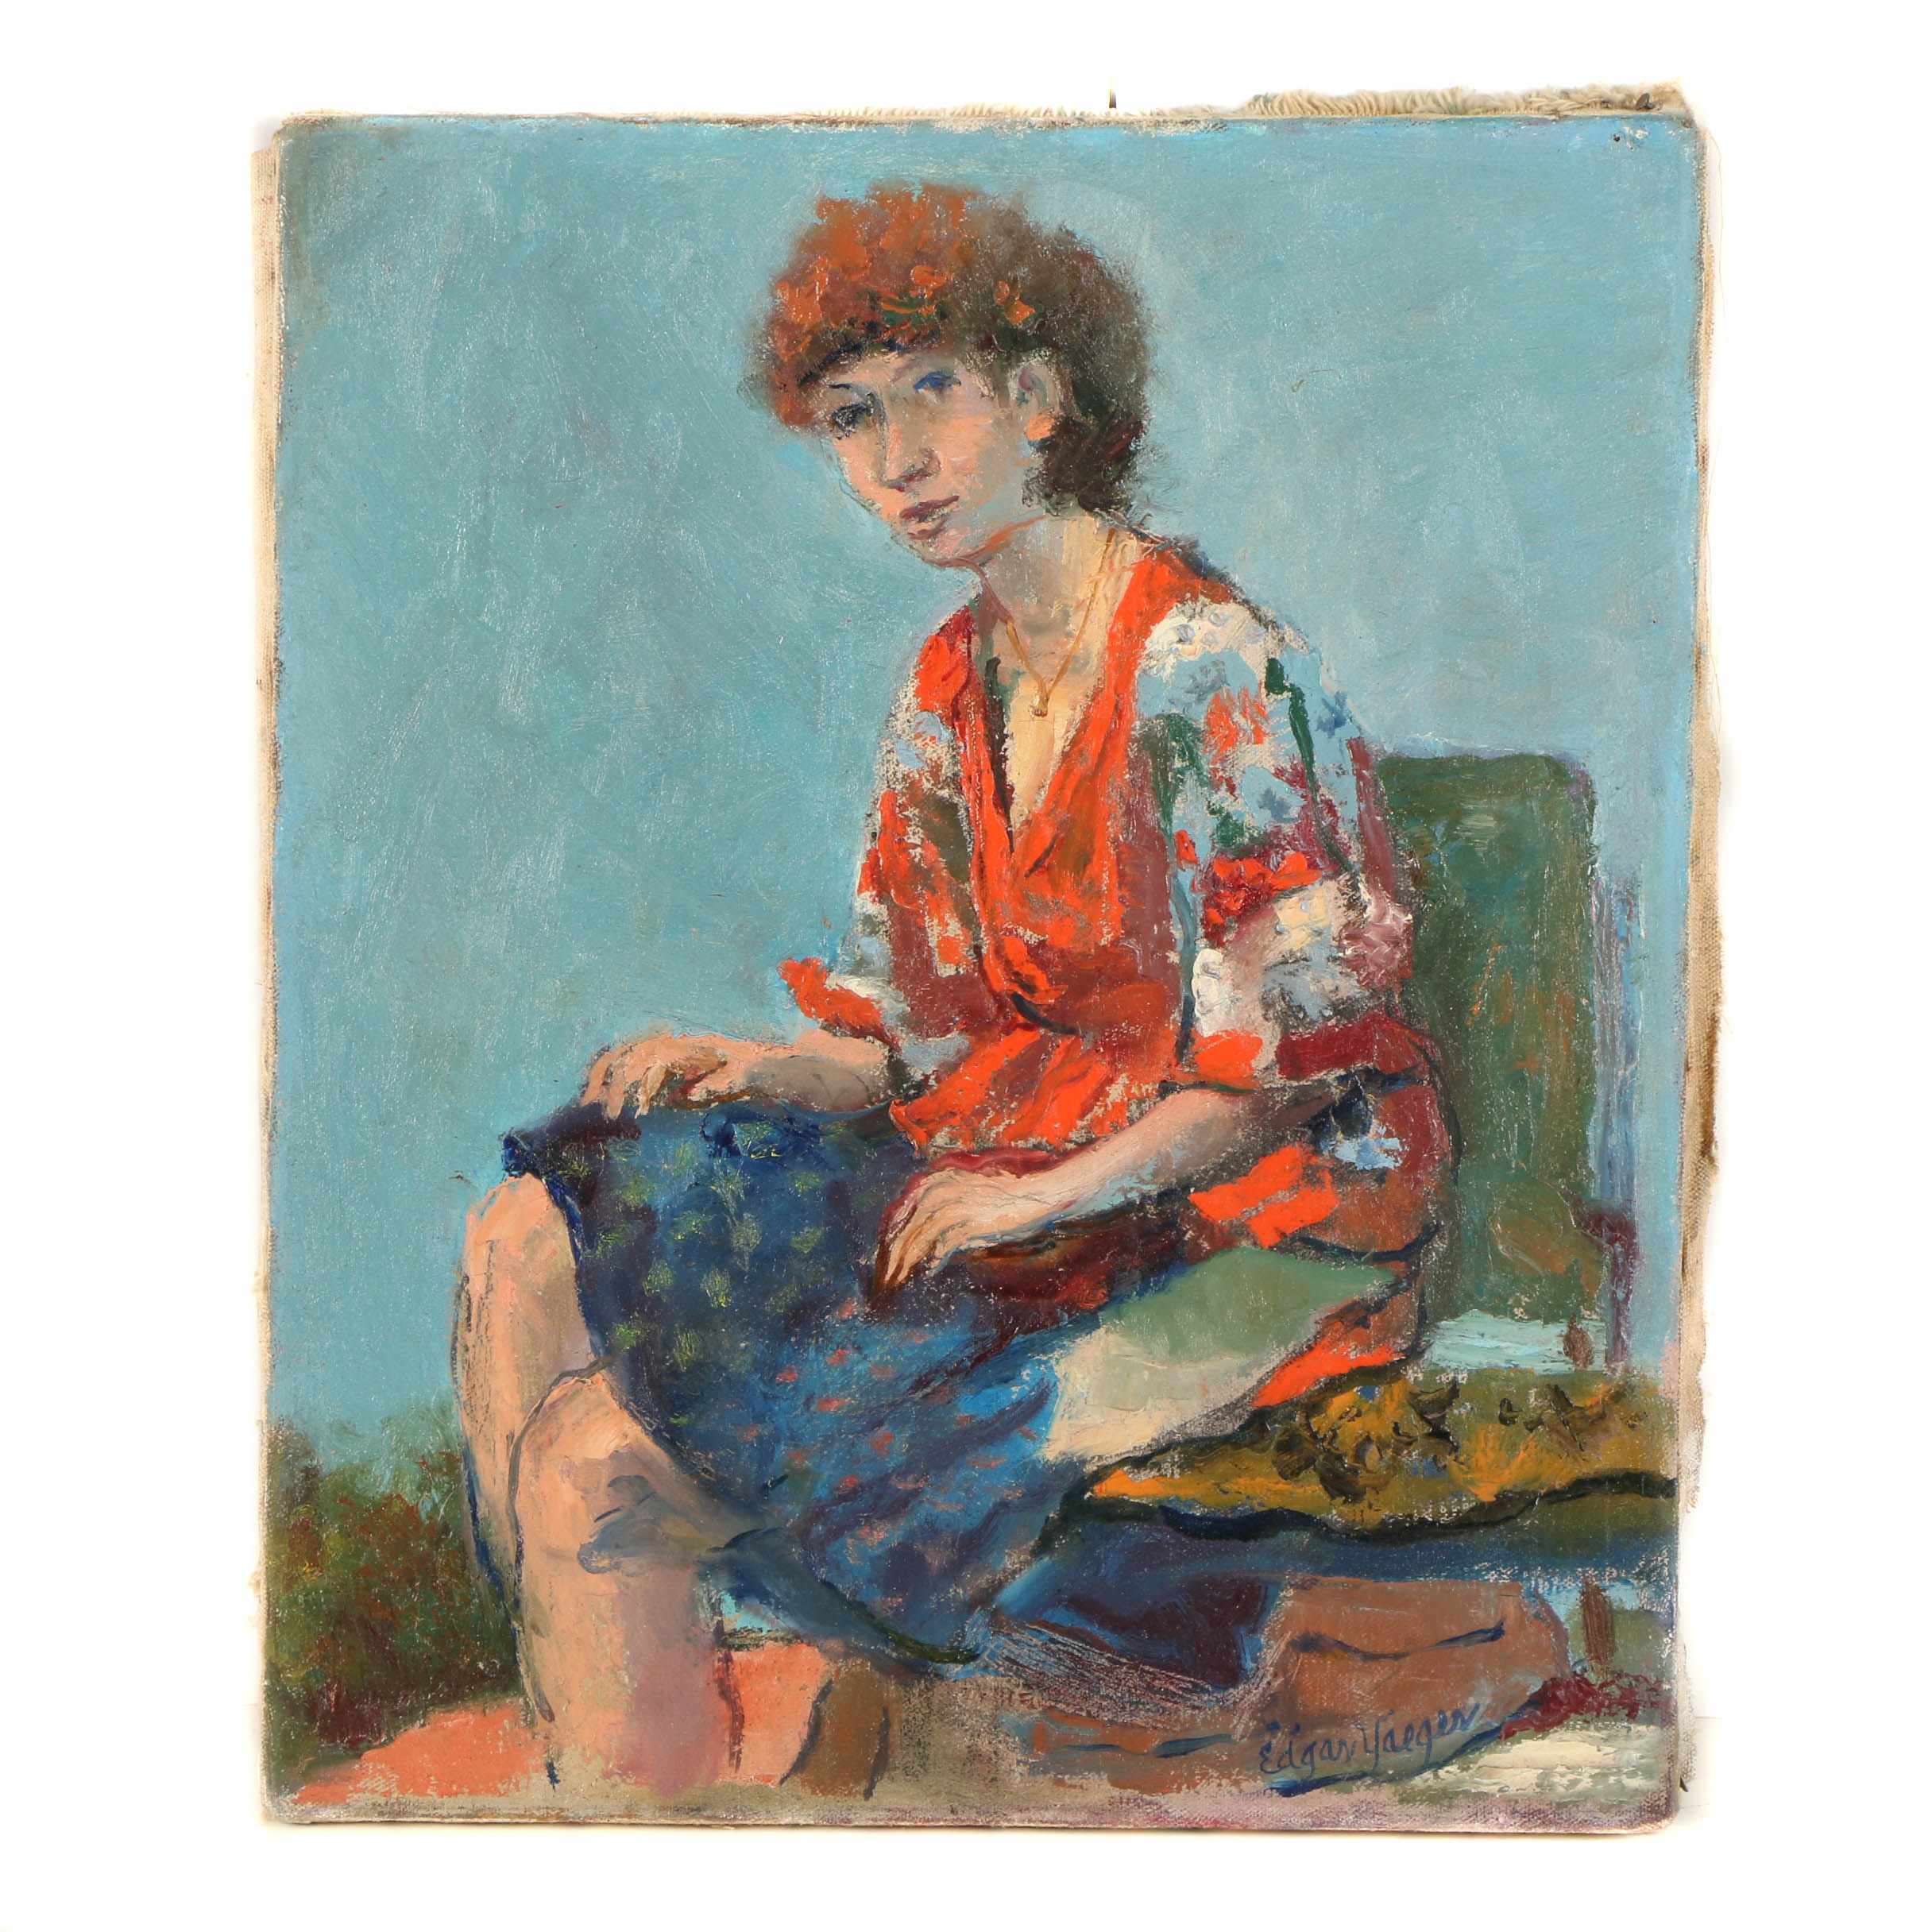 Edgar Yaeger Oil Painting on Canvas of a Woman in a Floral Dress